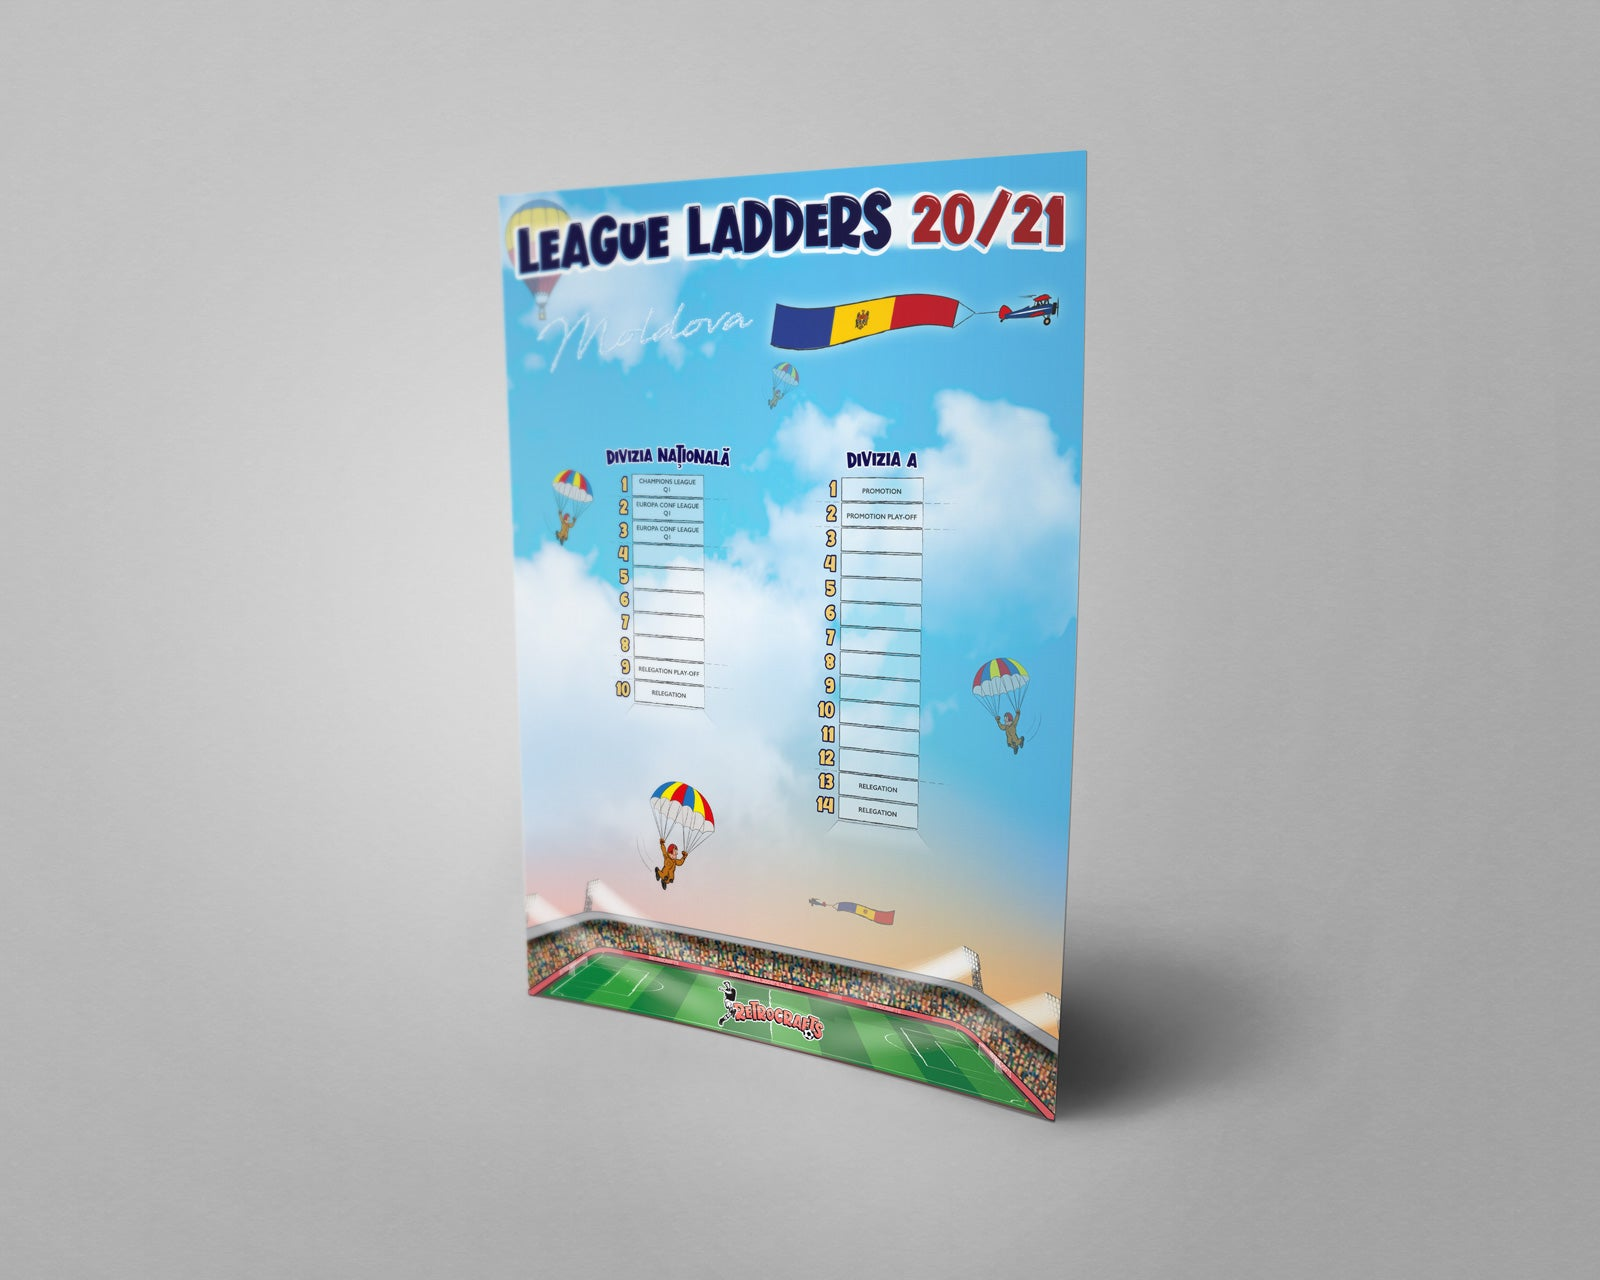 Moldova Football League Tiers 1 & 2 2020/21 Season League Ladders